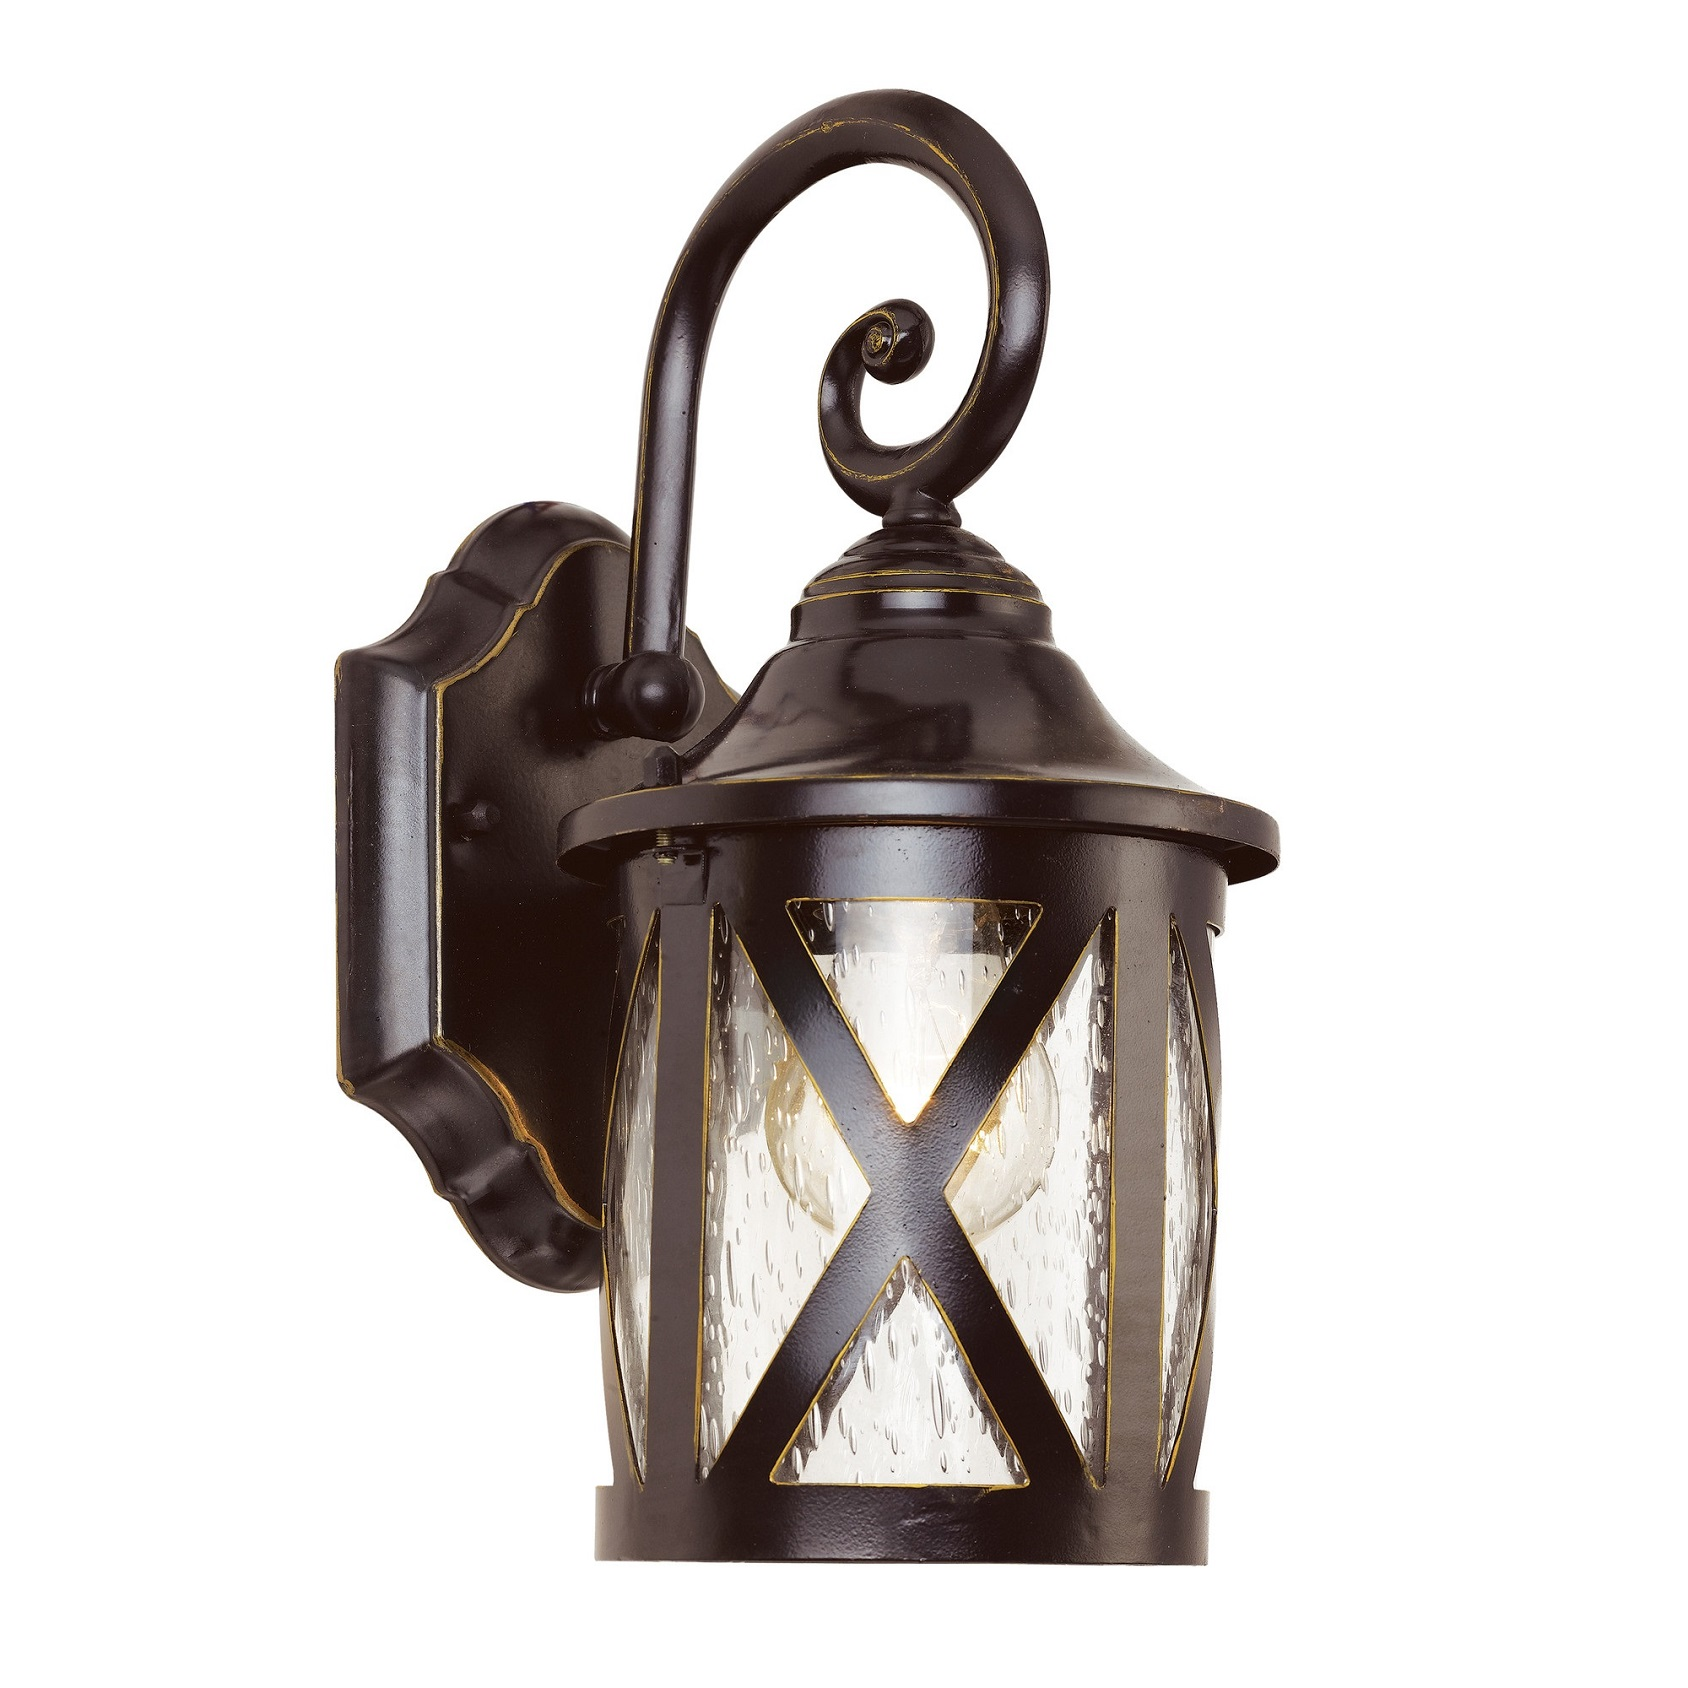 Outdoor Wall Lights Types: TransGlobe Lighting New England 1 Light Outdoor Wall